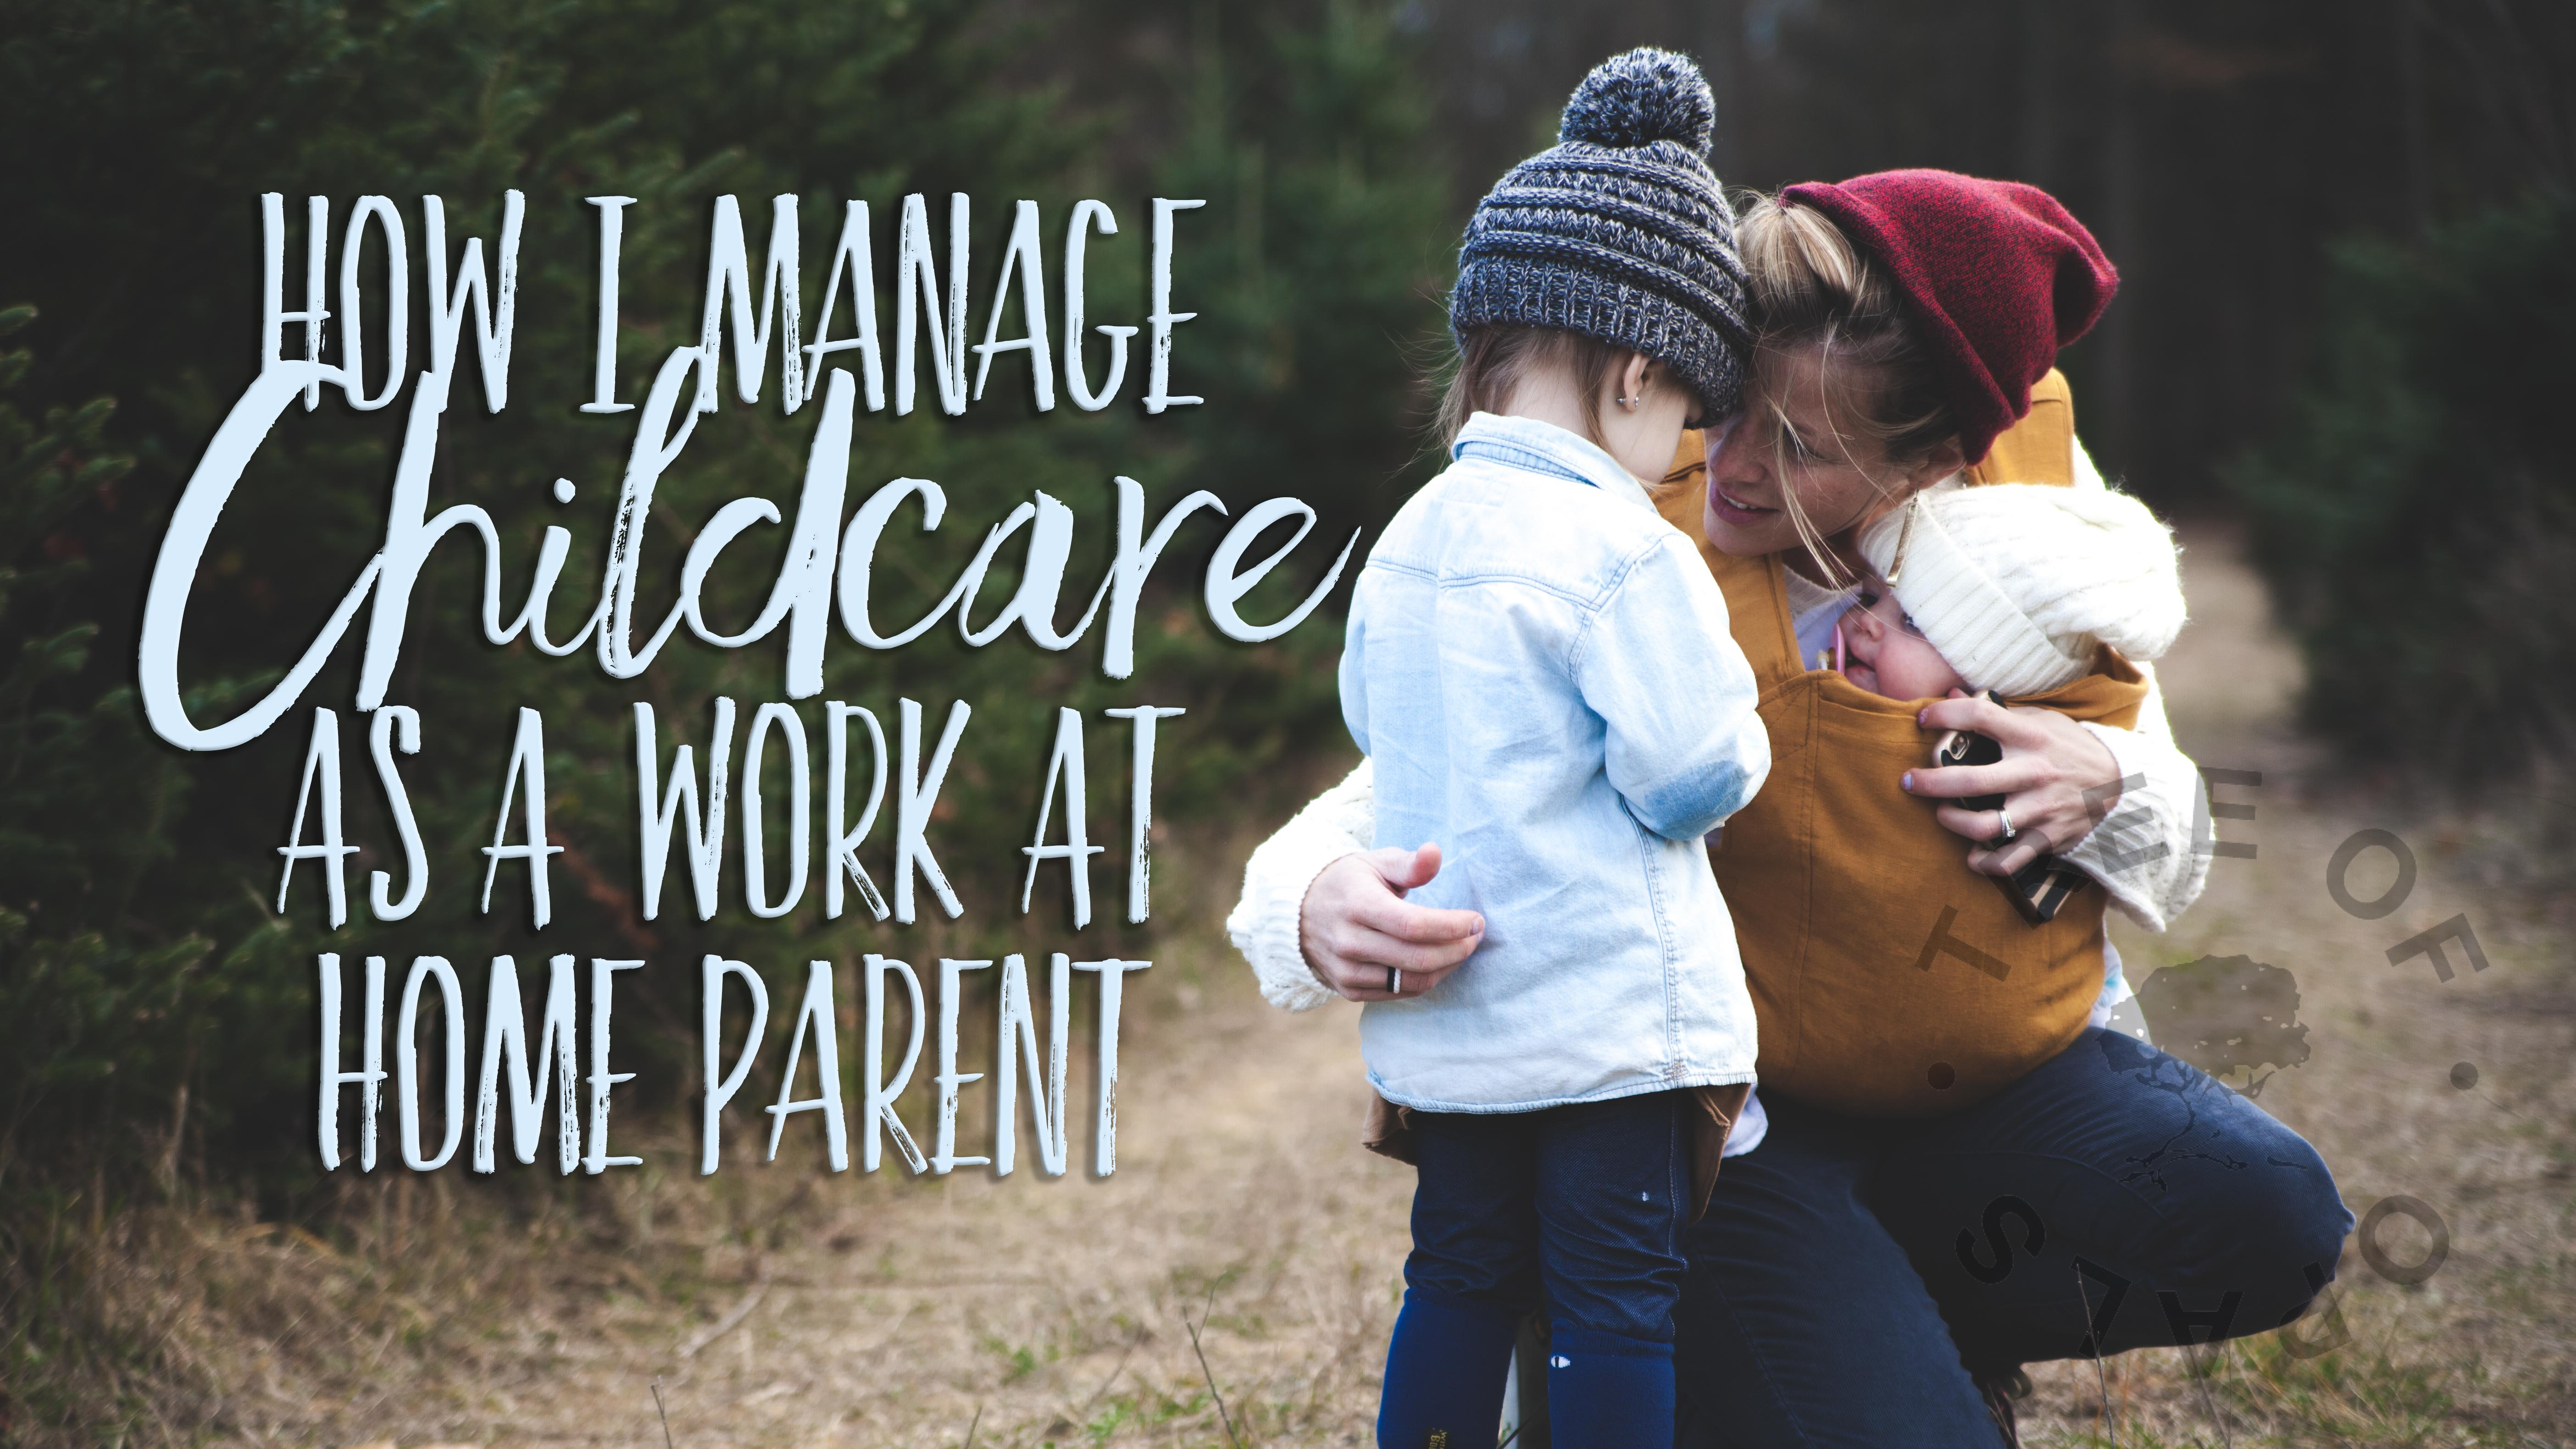 How I manage childcare as a work at home parent blog by Nikki Kamminga on Tree of Opals